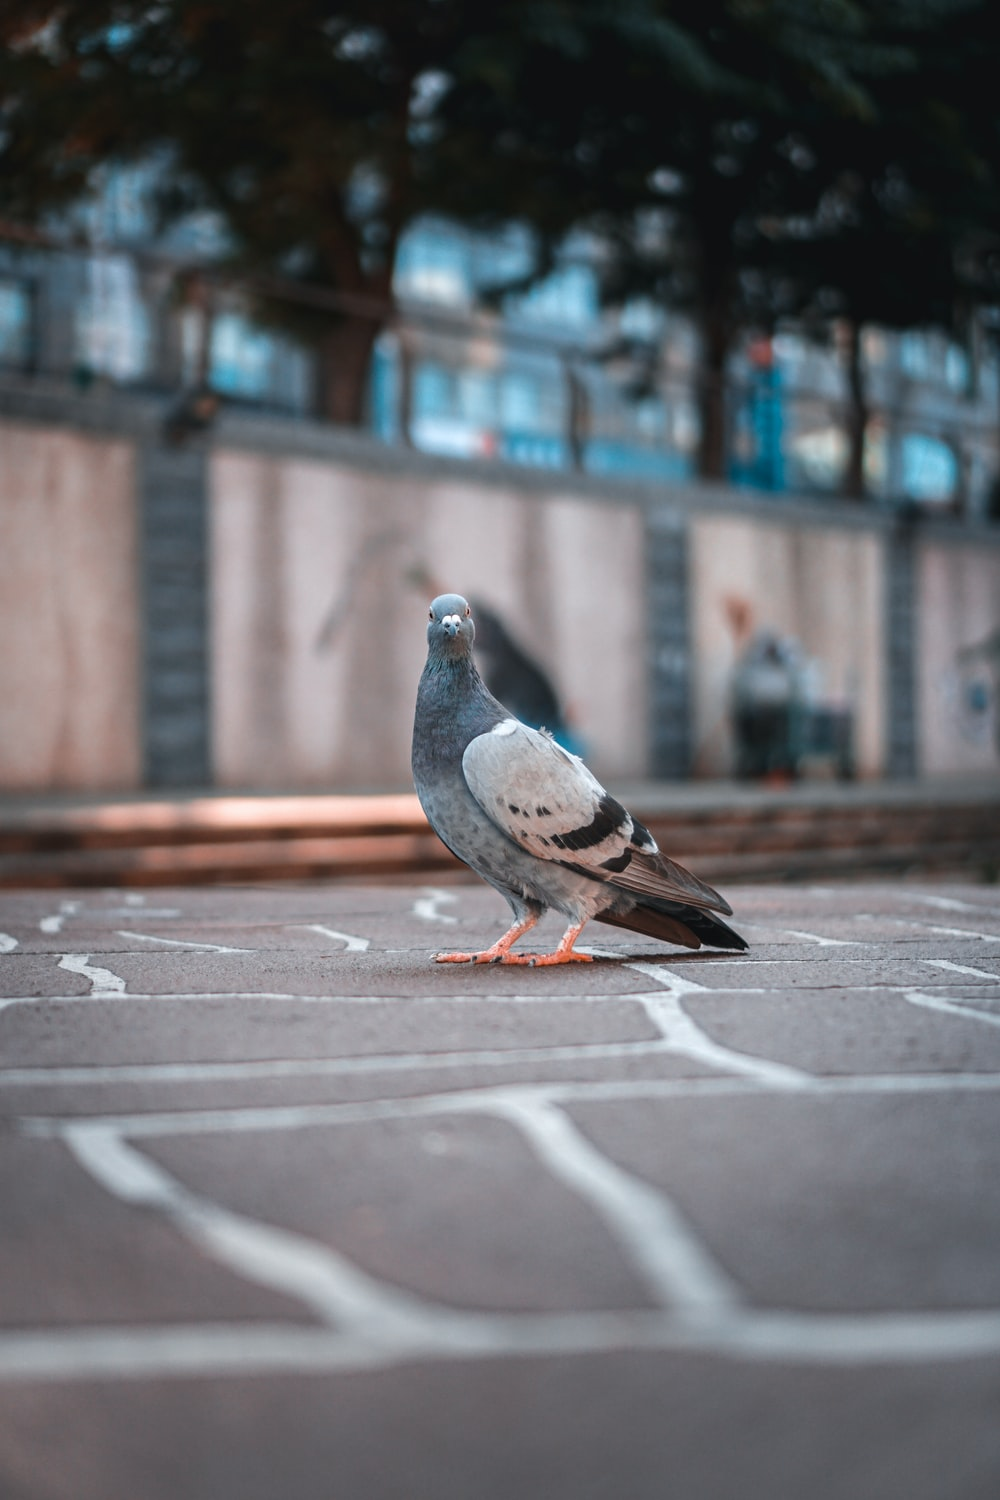 gray and white pigeon on gray concrete road during daytime